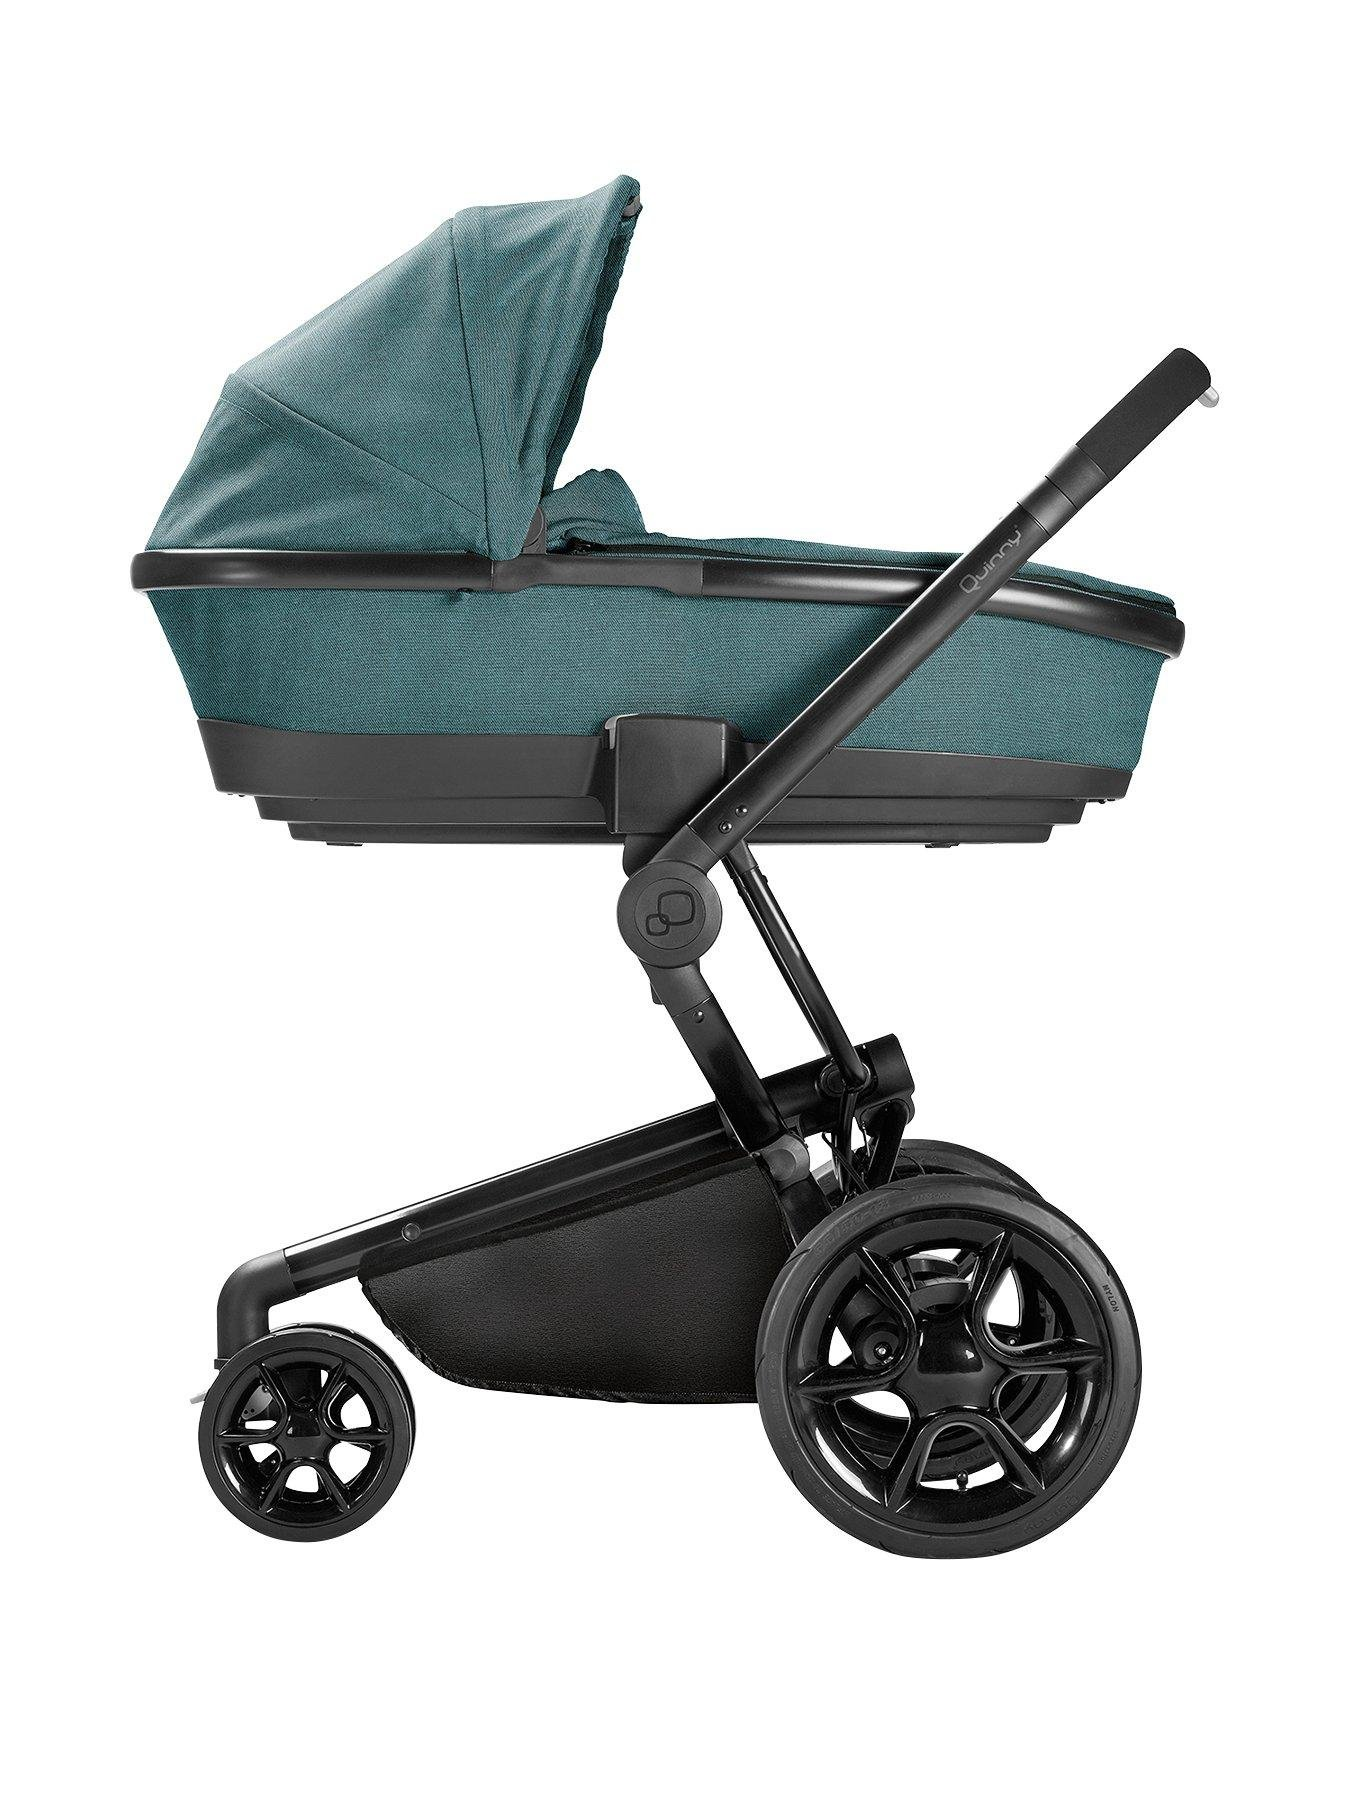 Quinny Quinny Moodd Pushchair, Foldable Carrycot, Pebble Car Seat Package - Novel Nile Quinny  4